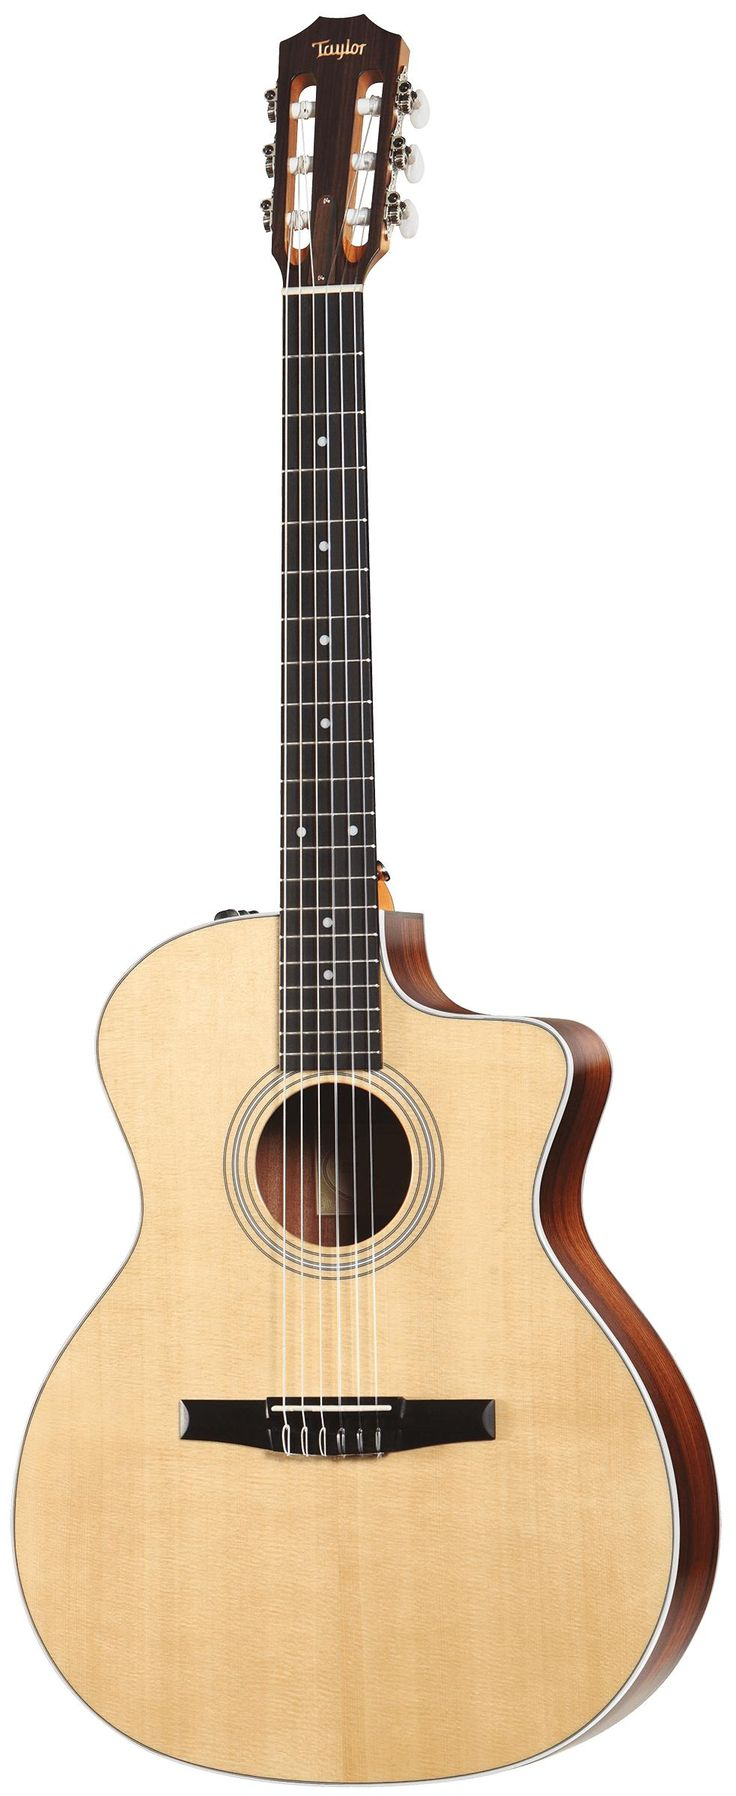 Taylor 214ce-N Acoustic-Electric Nylon String Guitar. Street price: $999. For a detailed guide to nylon string guitars see https://www.gearank.com/guides/nylon-string-guitar